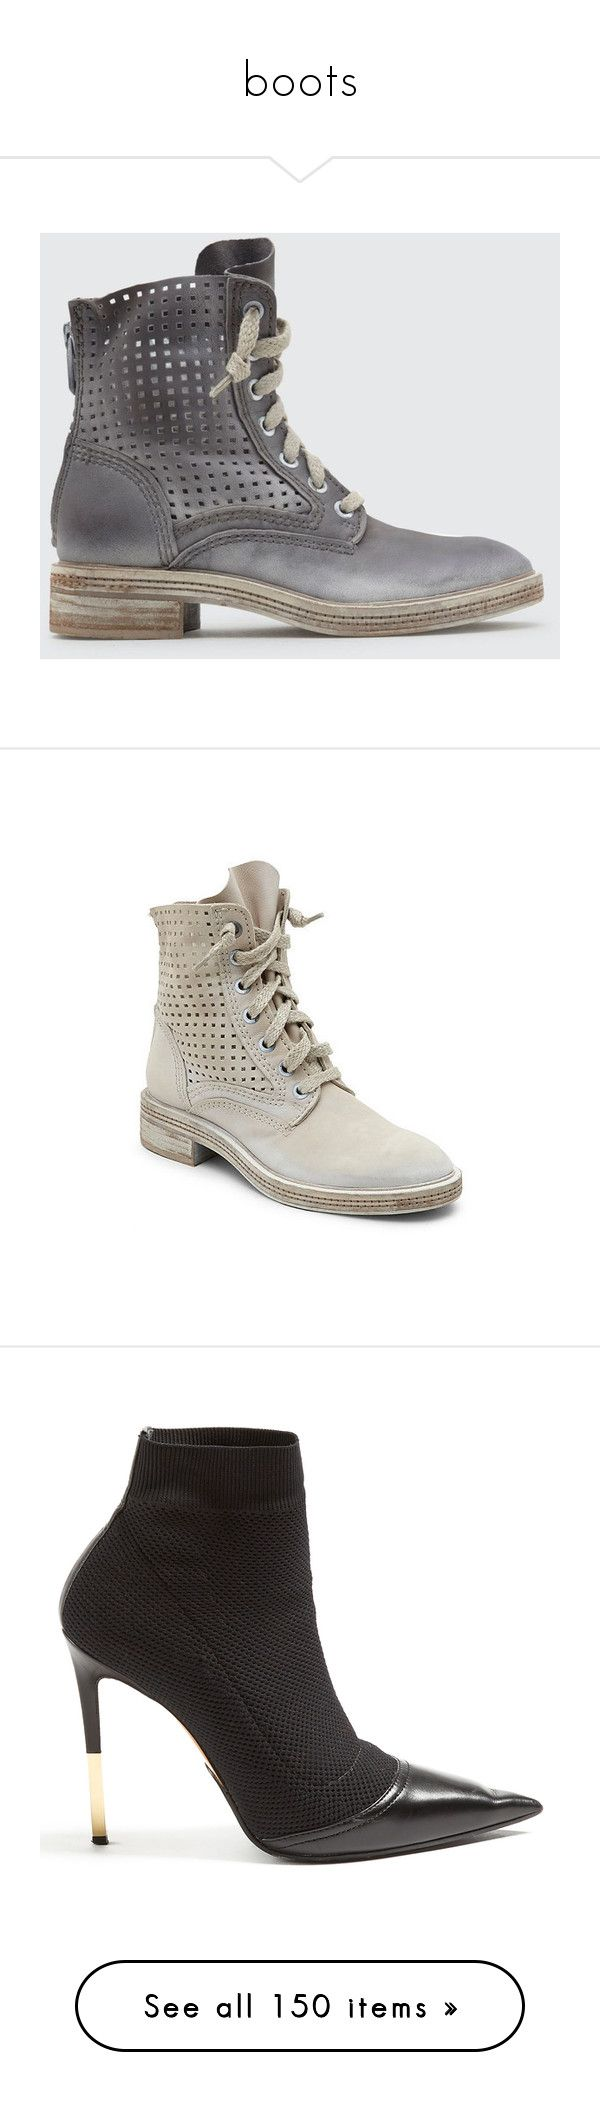 """boots"" by stacy-hardy ❤ liked on Polyvore featuring shoes, boots, green, flat leather boots, platform shoes, leather hiking boots, platform boots, flat shoes, zip boots and dolce vita shoes"